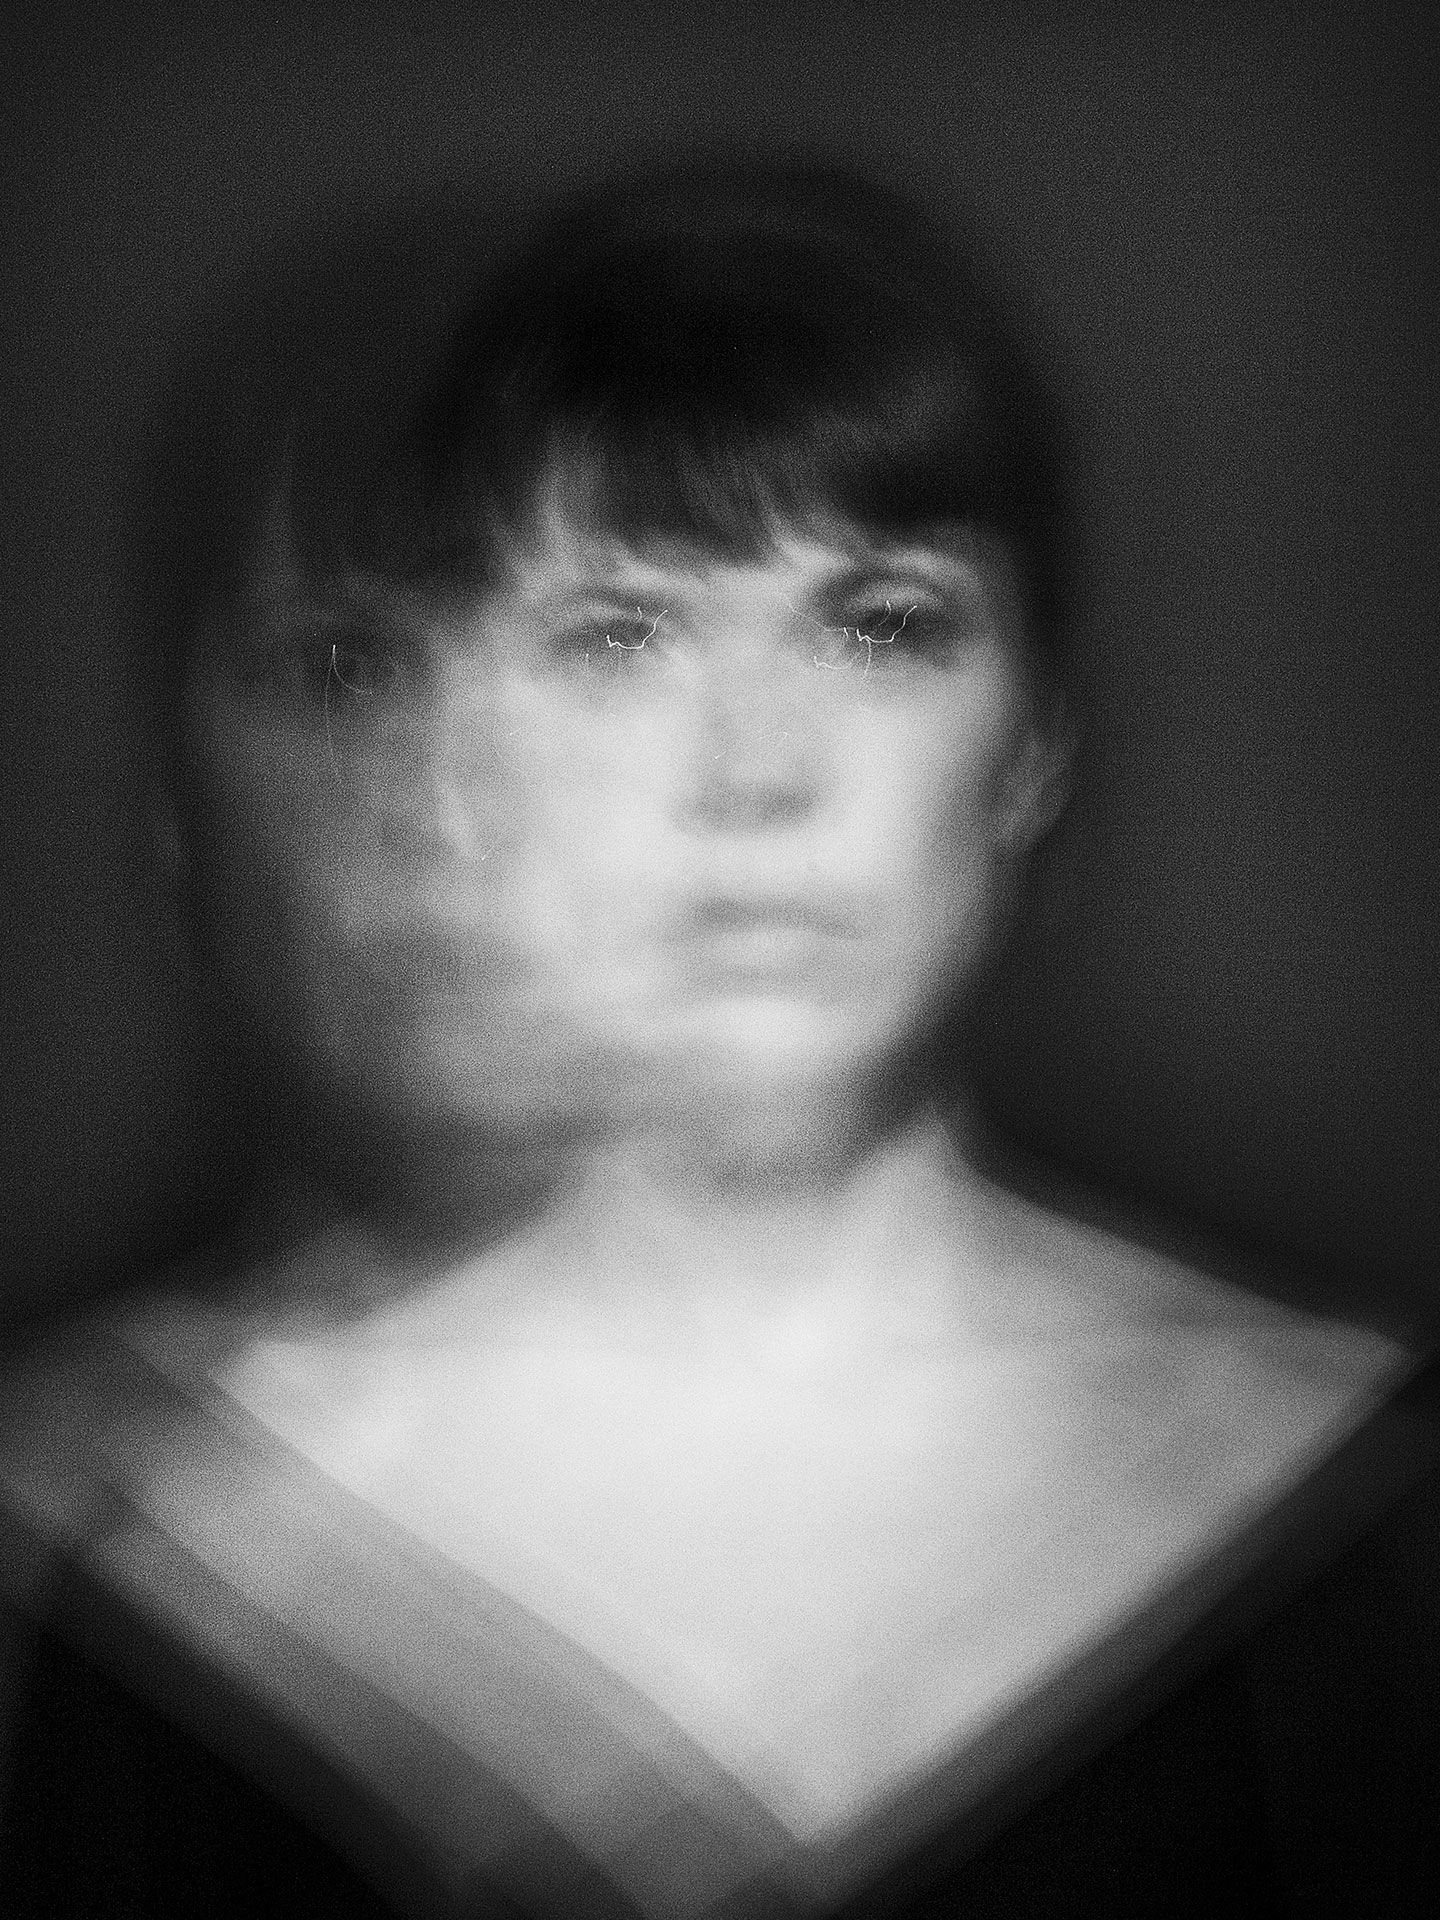 Blurred black and white portrait of actress Anne Dorval.